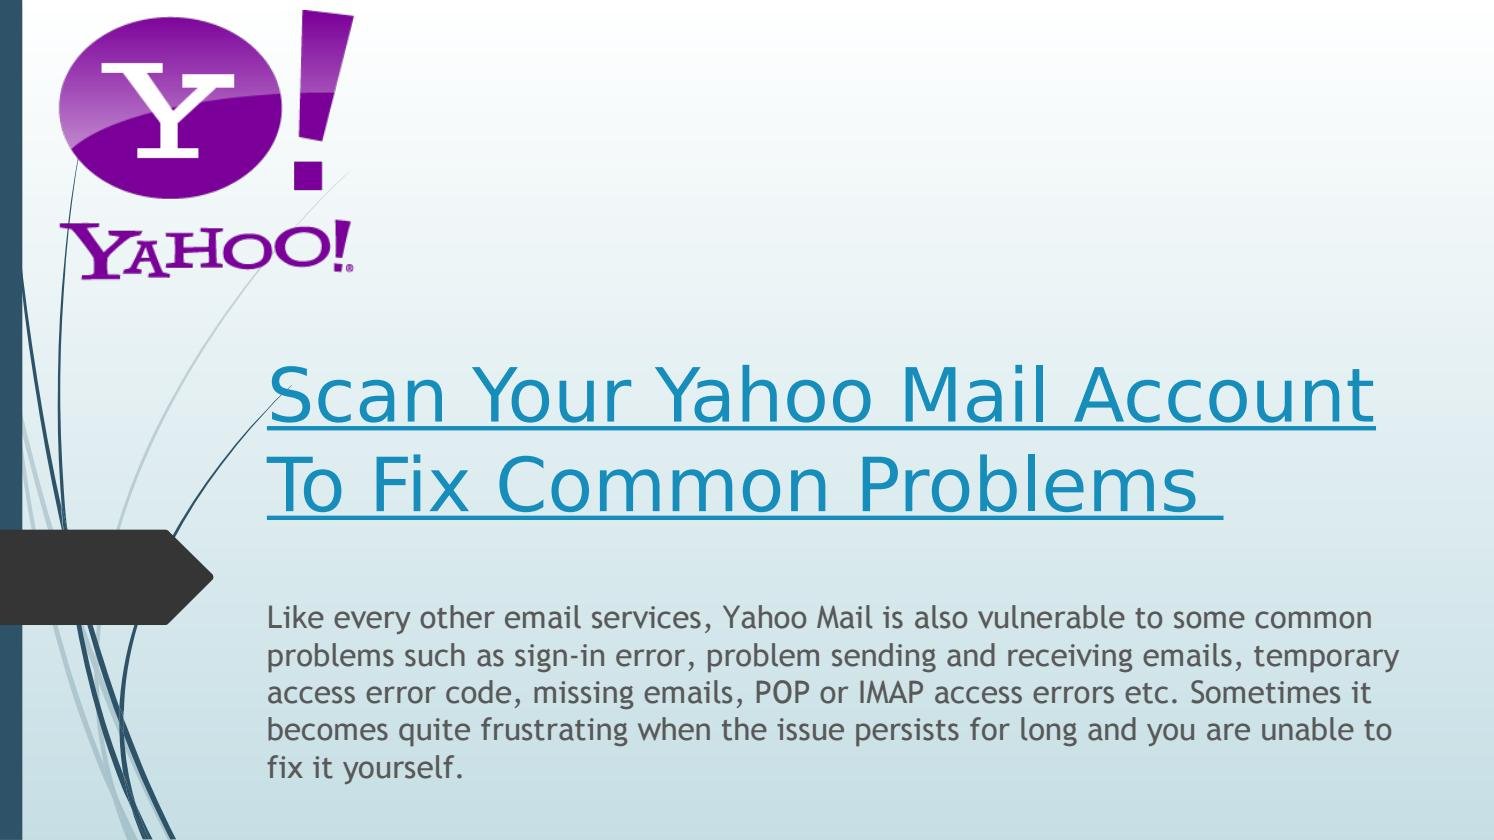 Scan Your Yahoo Mail Account To Fix Common Problems? by Yahoo